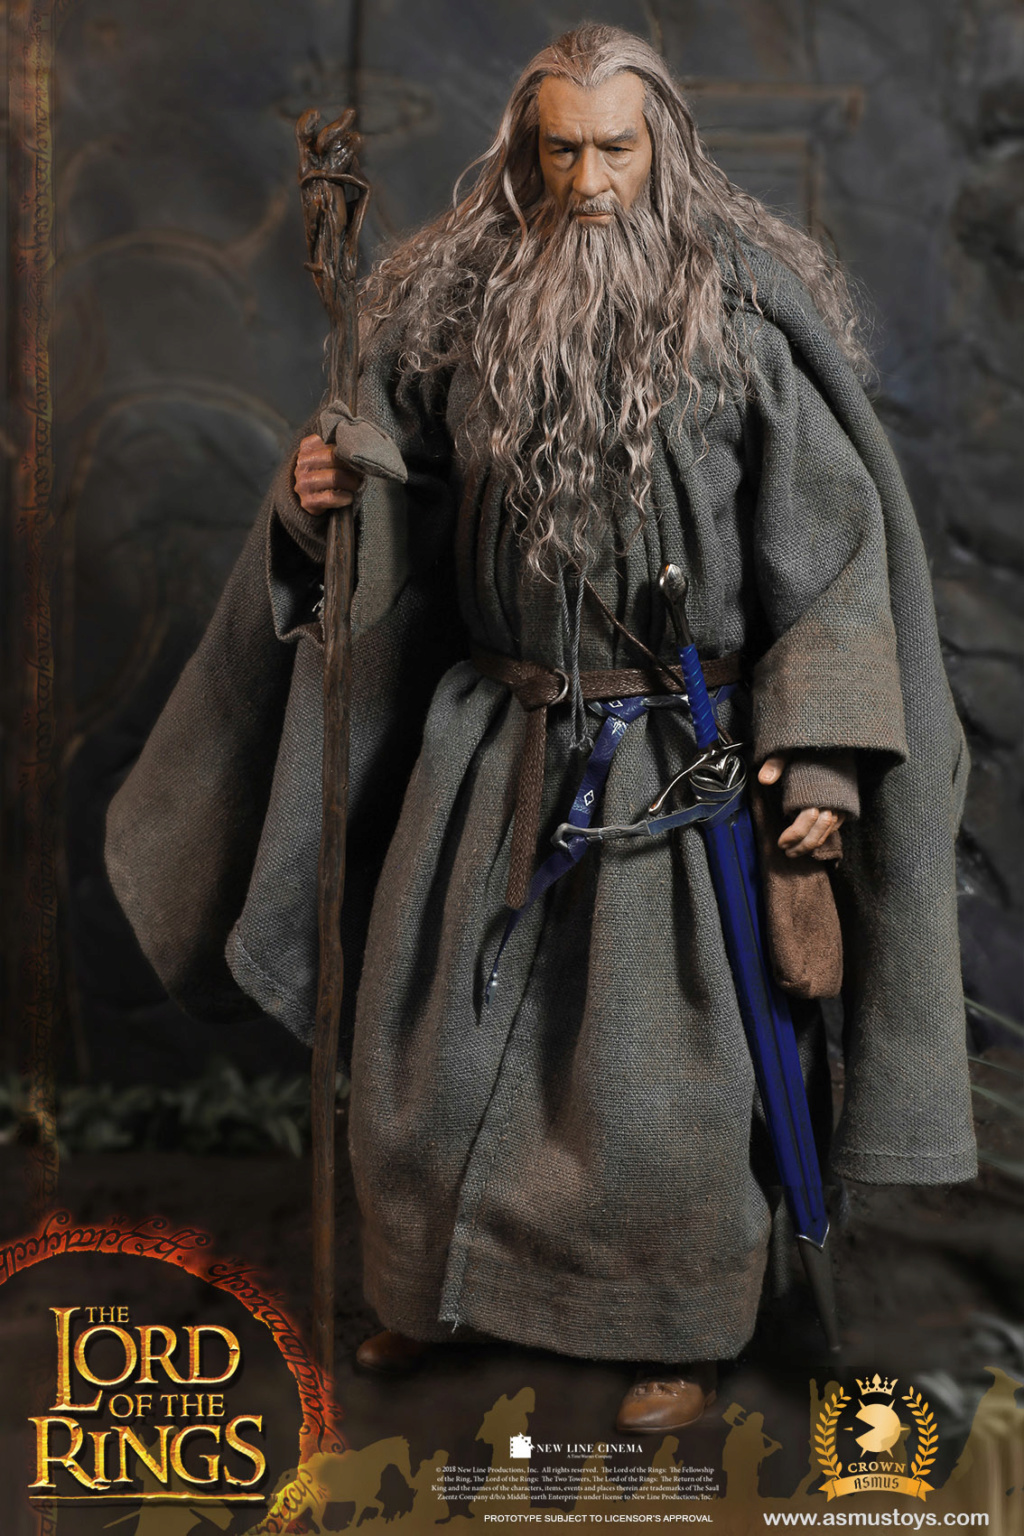 NEW PRODUCT: ASMUS TOYS THE CROWN SERIES : GANDALF THE GREY 1/6 figure 5227